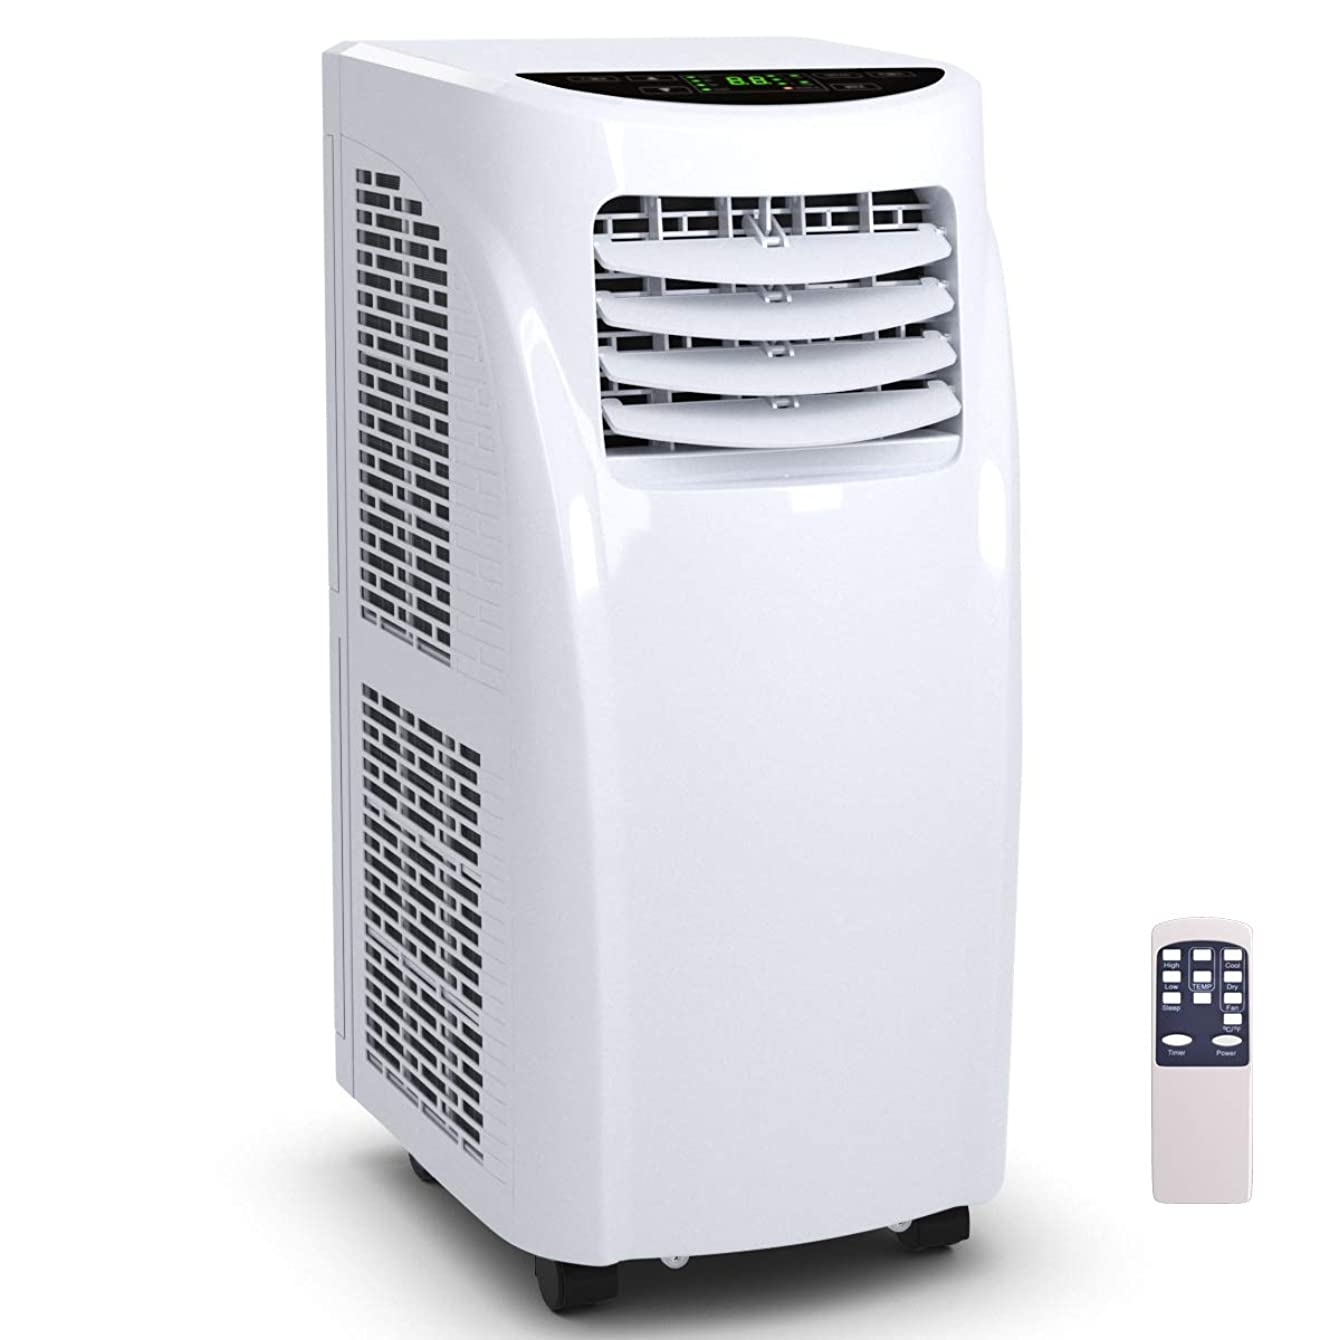 COSTWAY 10000 BTU Air Conditioner, Portable Air Conditioner Unit with Remote Control Dehumidifier Function Window Wall Mount, 4 Caster Wheel, Sleep Mode and 2 Fan Speed dfykgafqdmxpr22